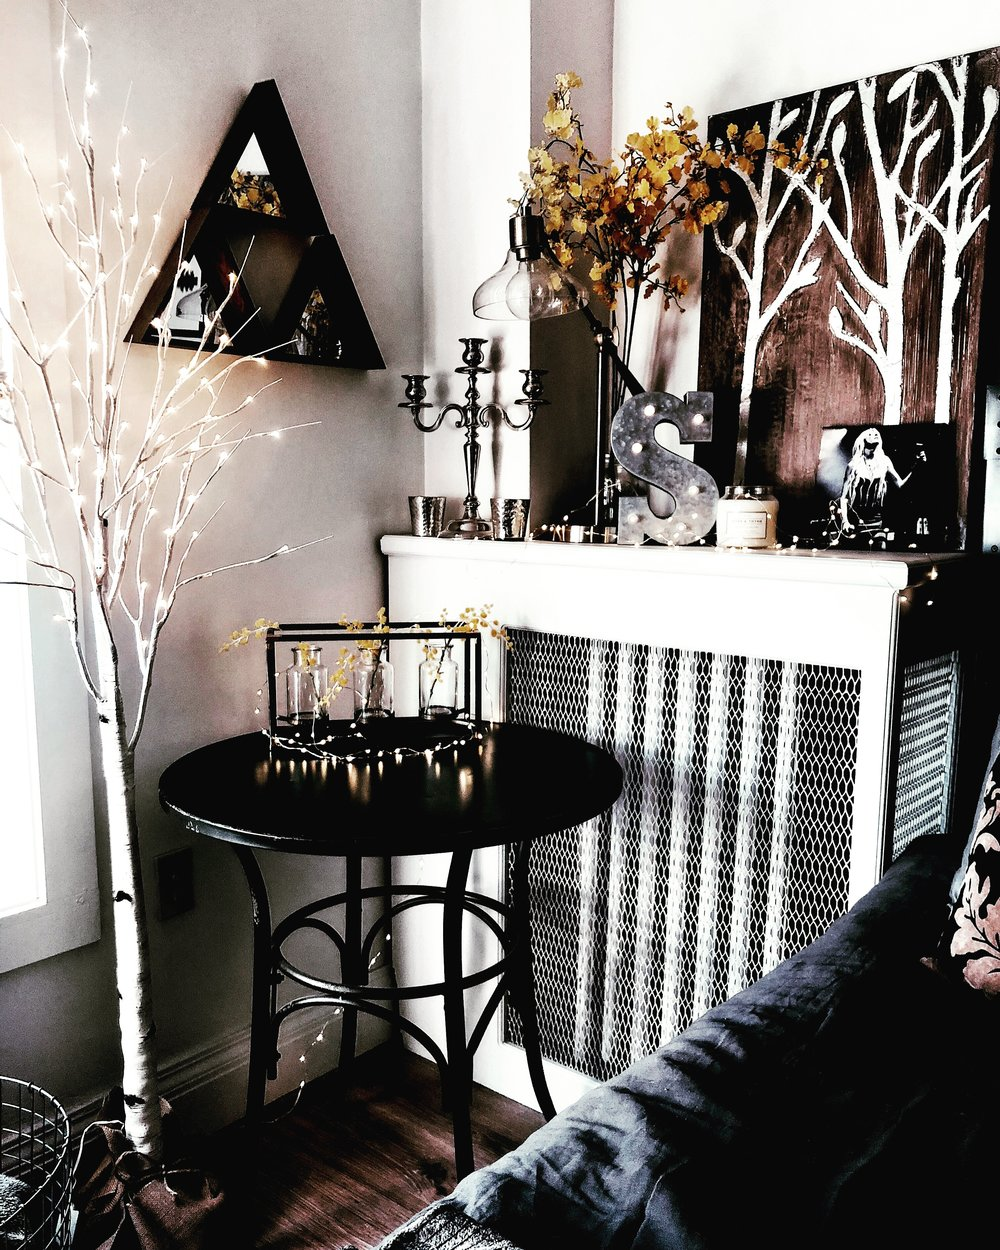 Rustic home decor with yellow faux florals and fairy lights